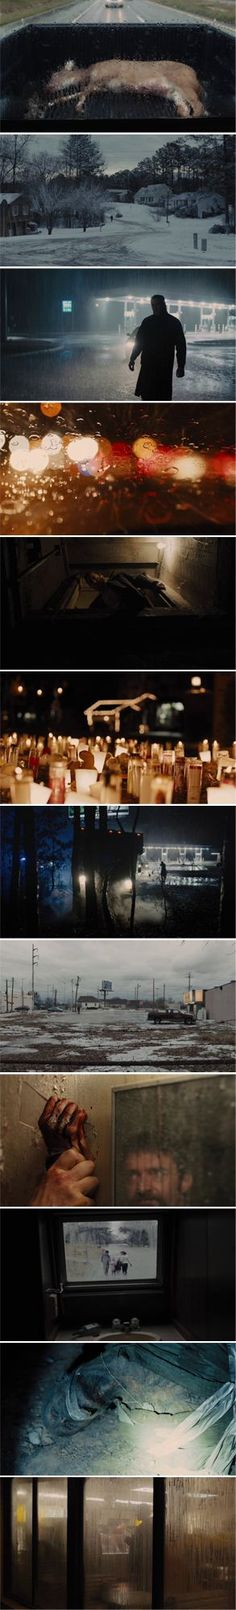 #rogerdeakins #cinematography #prisoners